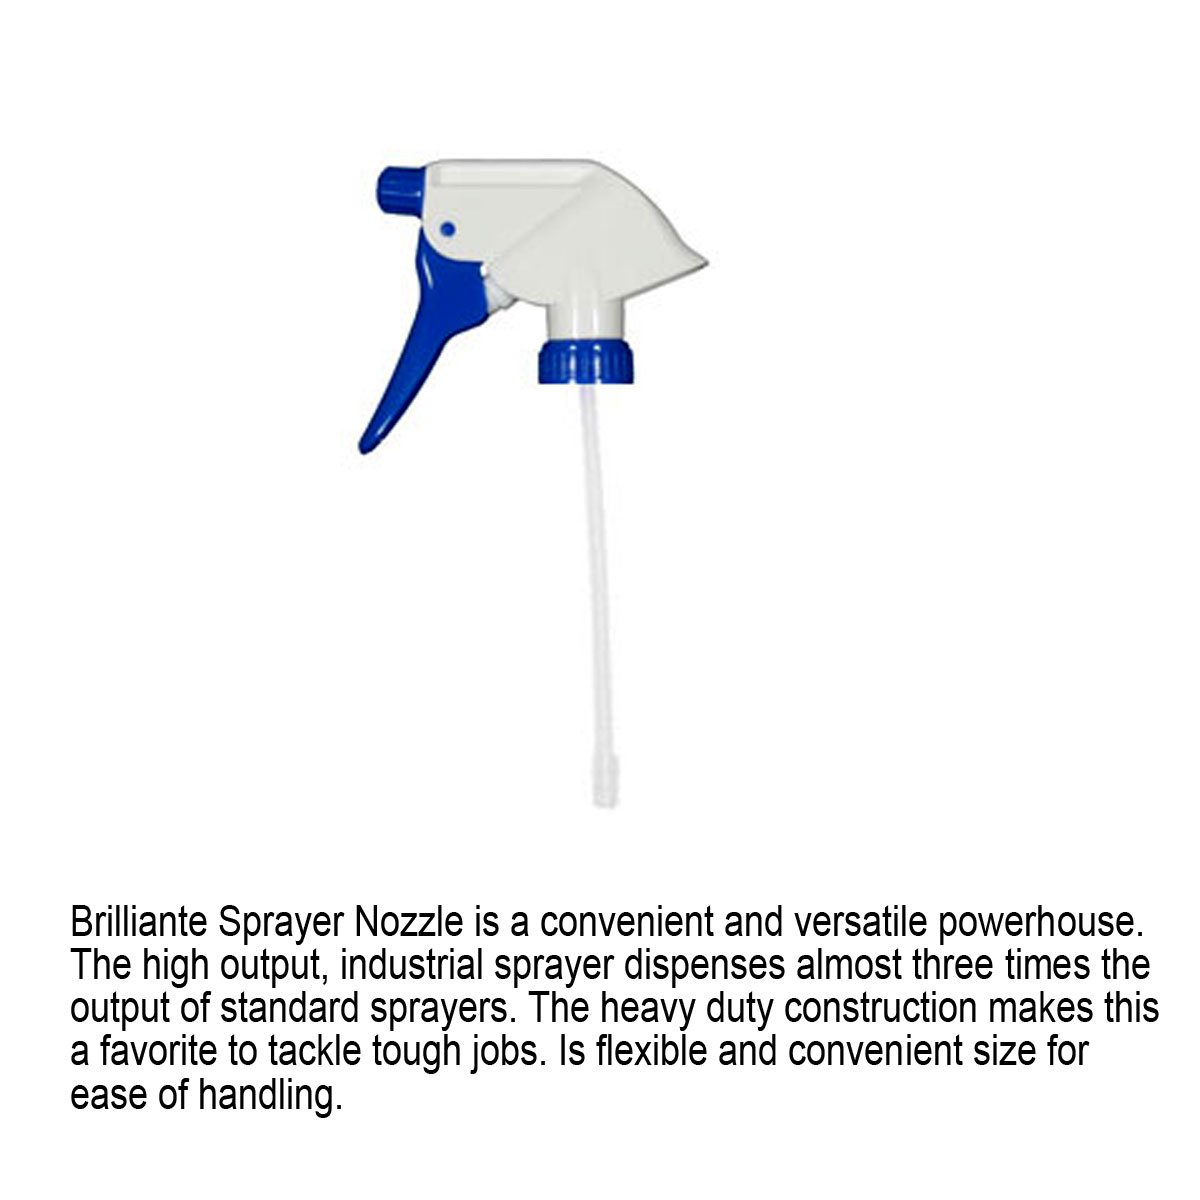 Brilliante Crystal Chandelier Cleaner - Manual Sprayer 32oz Environmentally Safe, Ammonia-Free, Drip-Dry Formula, Made in USA (2 Pack) by CrystalPlace (Image #3)